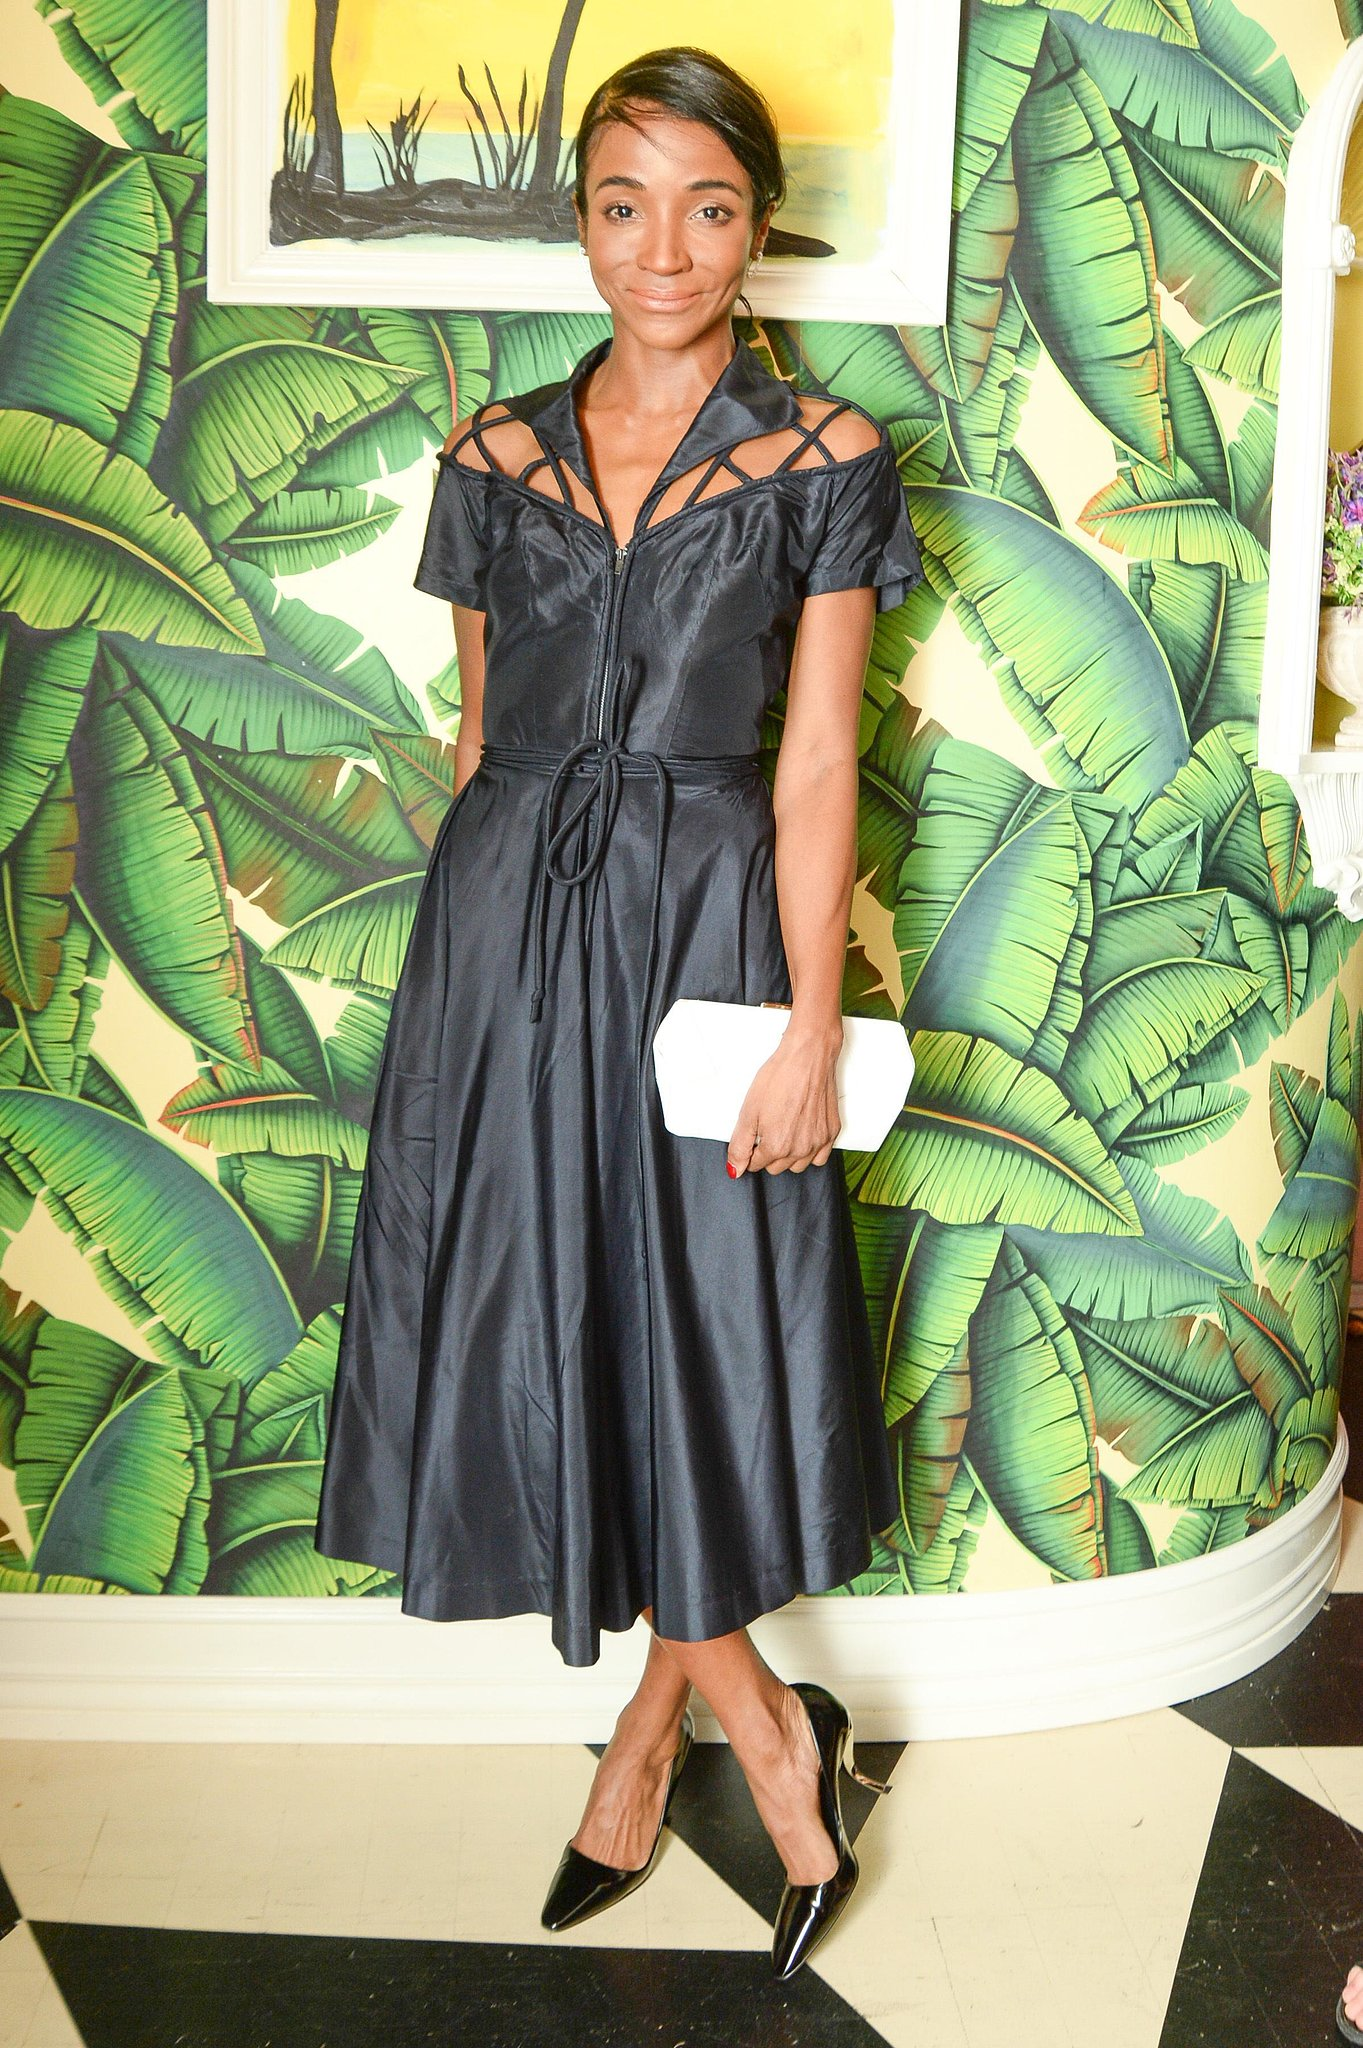 Genevieve Jones joined Atlanta de Cadenet at the Tribeca Grand Hotel in a skin-baring LBD.